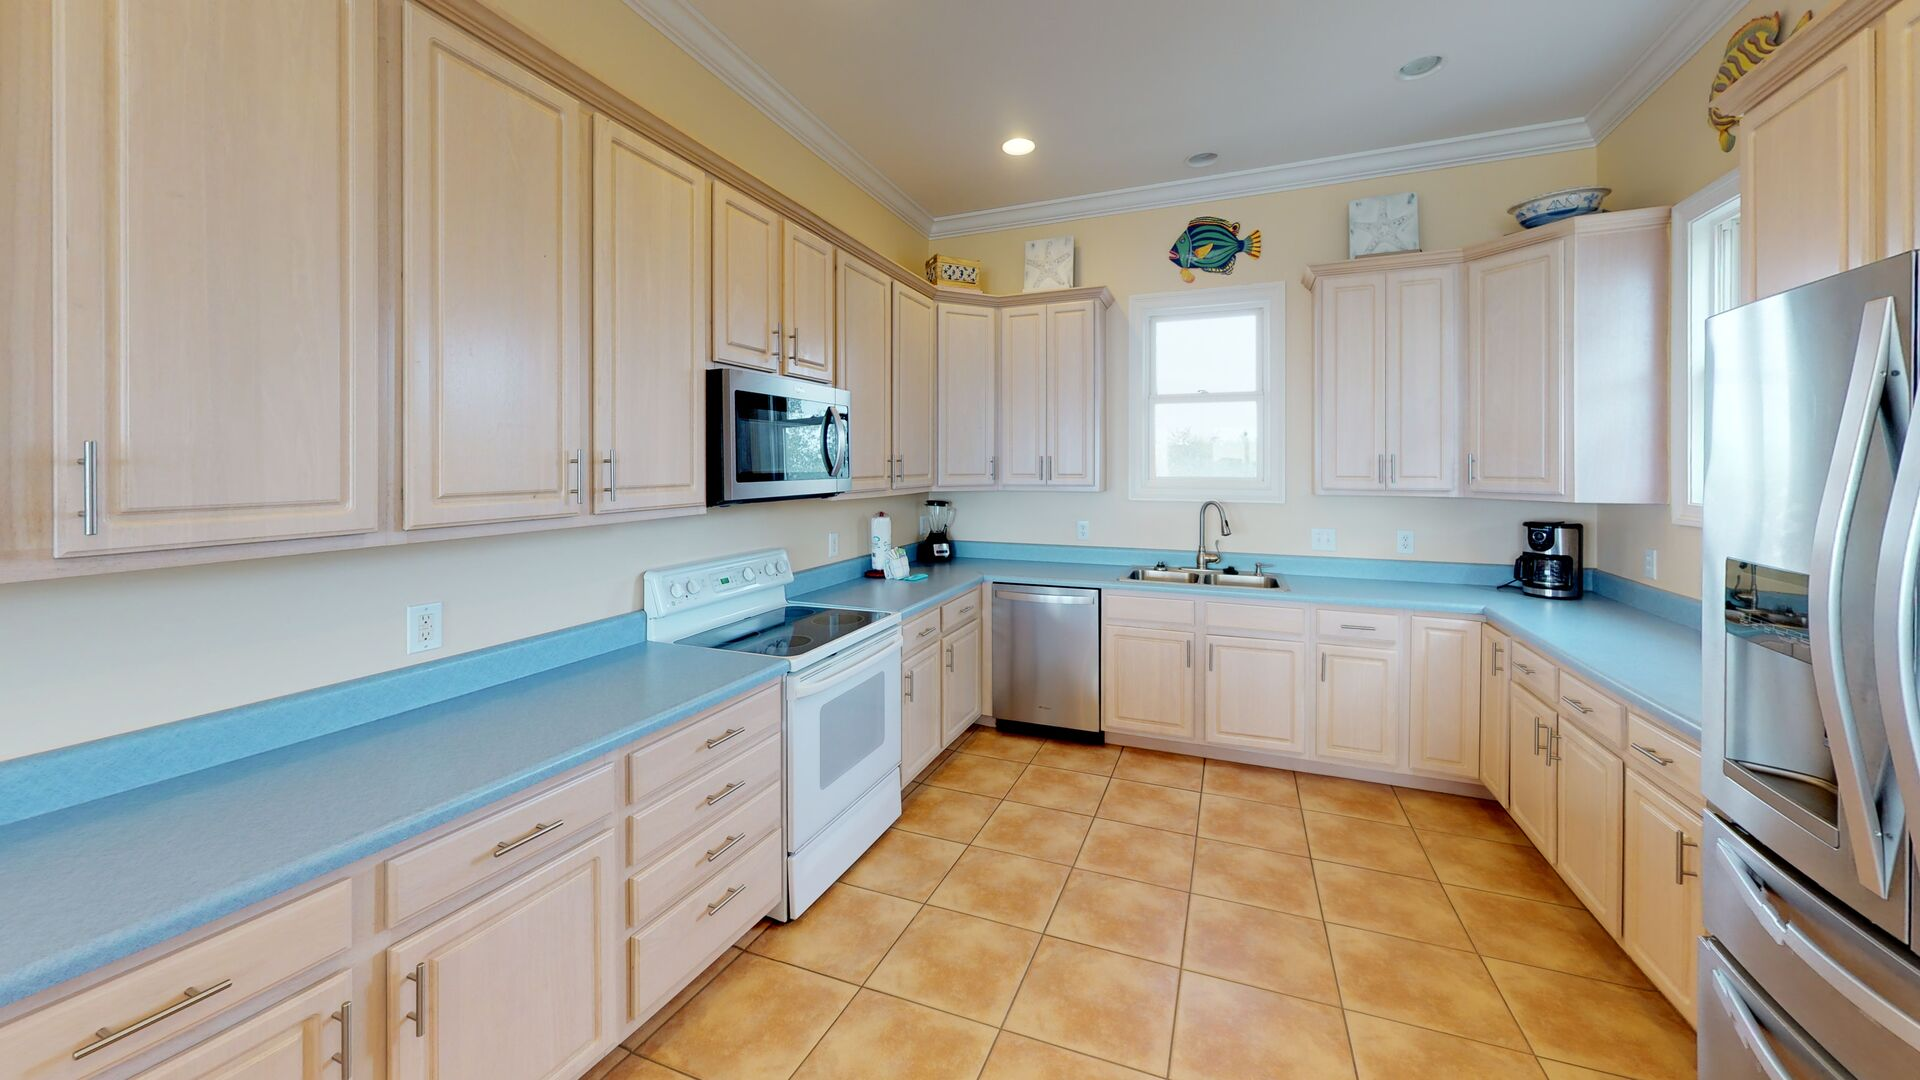 An Image of Beautiful Kitchen in Pet Friendly Gulf Shores Vacation Rental.